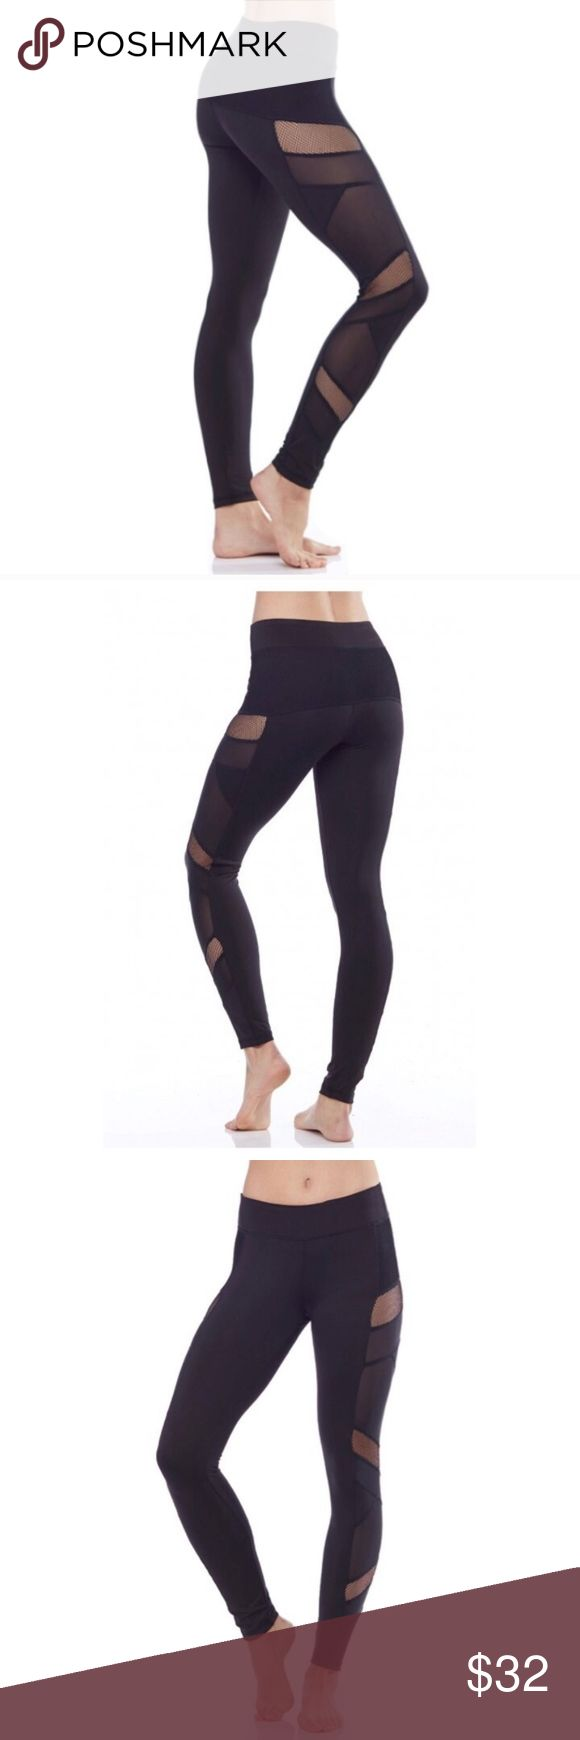 """LAST PAIR Electric Yoga Sexy Mesh Yoga Pants Look hot and stay cool while you sweat with the Sexy Mesh Panel Legging from Electric Yoga. Made of a smooth, stretchy fabric, with mesh paneling running down the side of each leg, these leggings offer comfort and breathability throughout your yoga session.   2.5"""" waistband. Hidden waistband pocket.  Fabric: 80% Polyester, 14% Spandex, 6% Nylon. Care: Hand wash cold. Lay flat or hang to dry. Do not bleach. Do not iron. Do not dry clean.   Large…"""